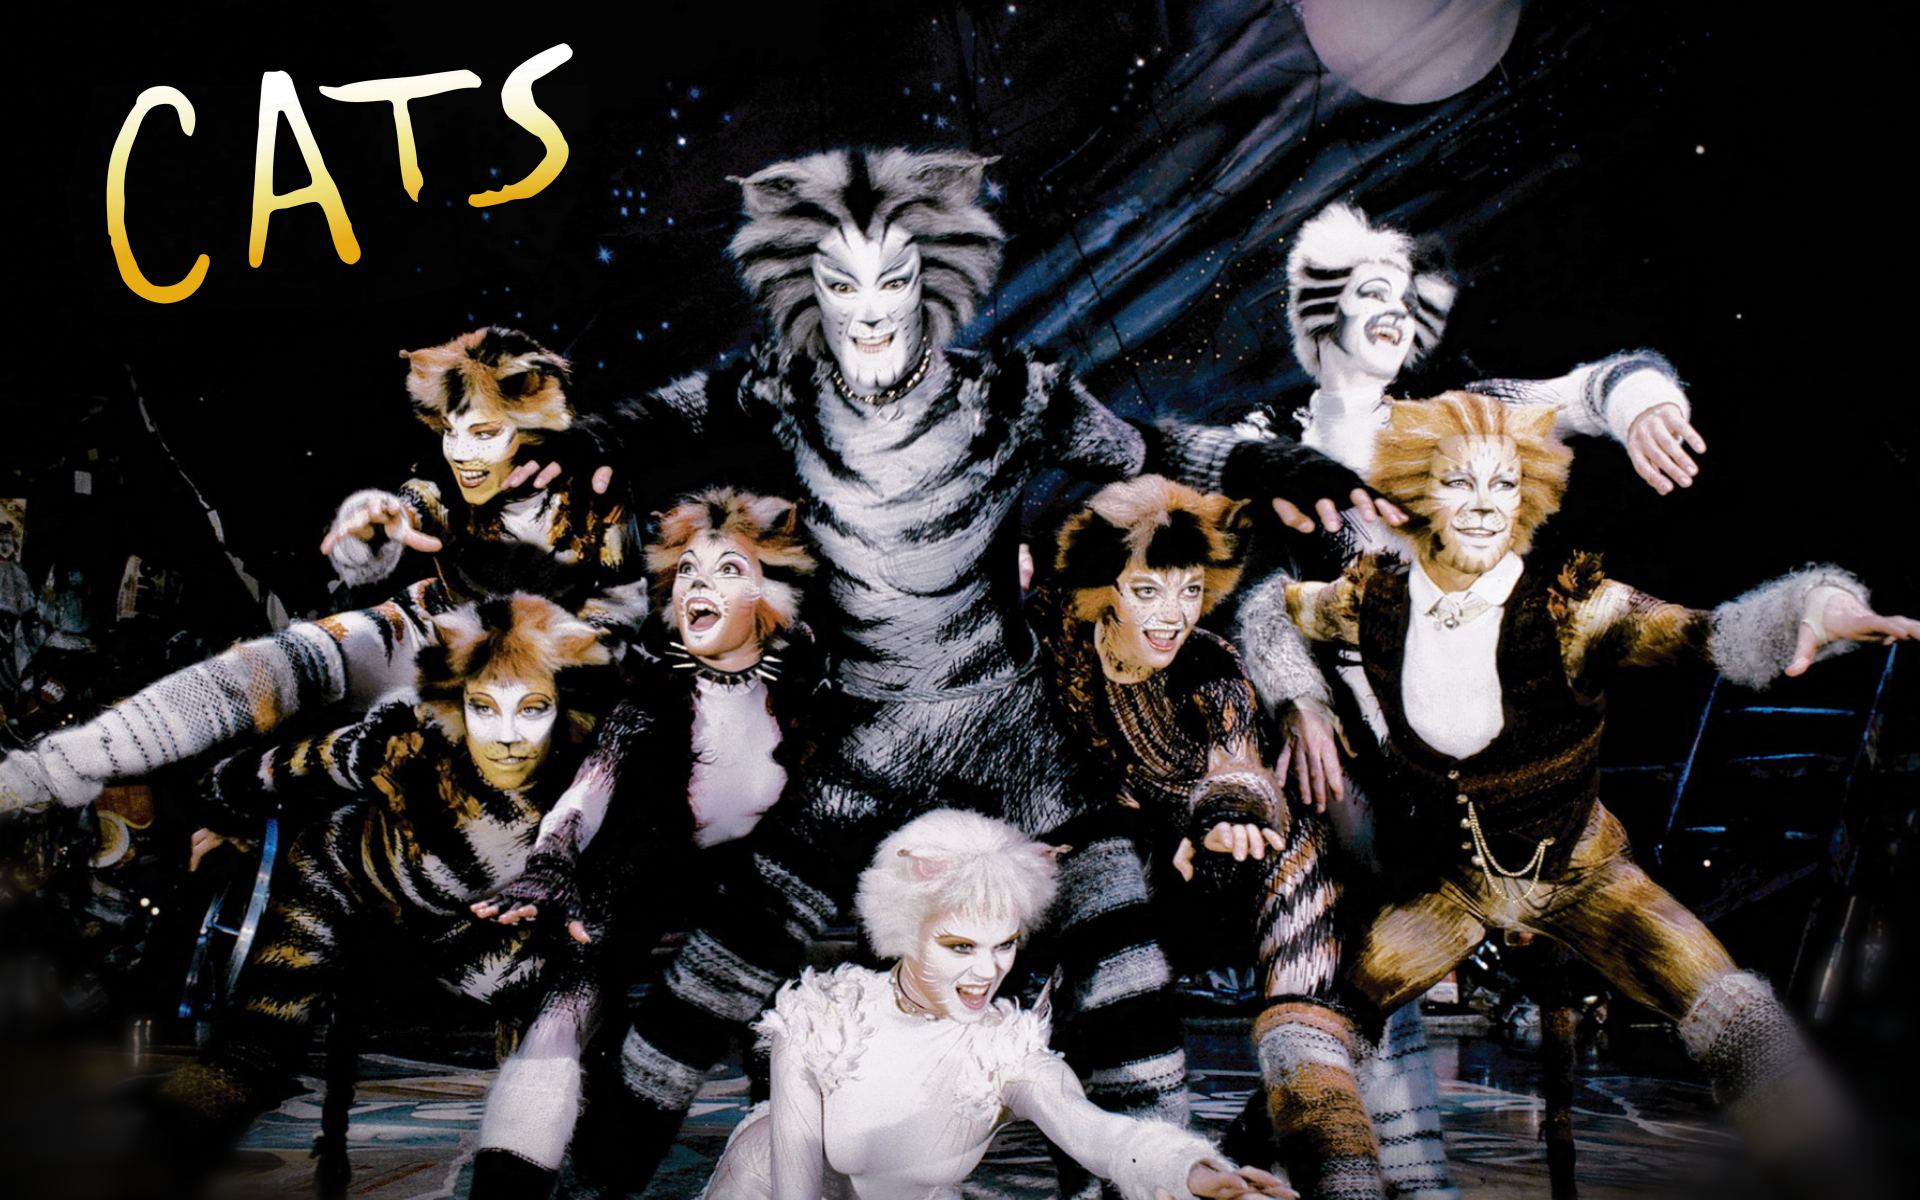 I know all the Words Cats musical, Cat movie, Musical